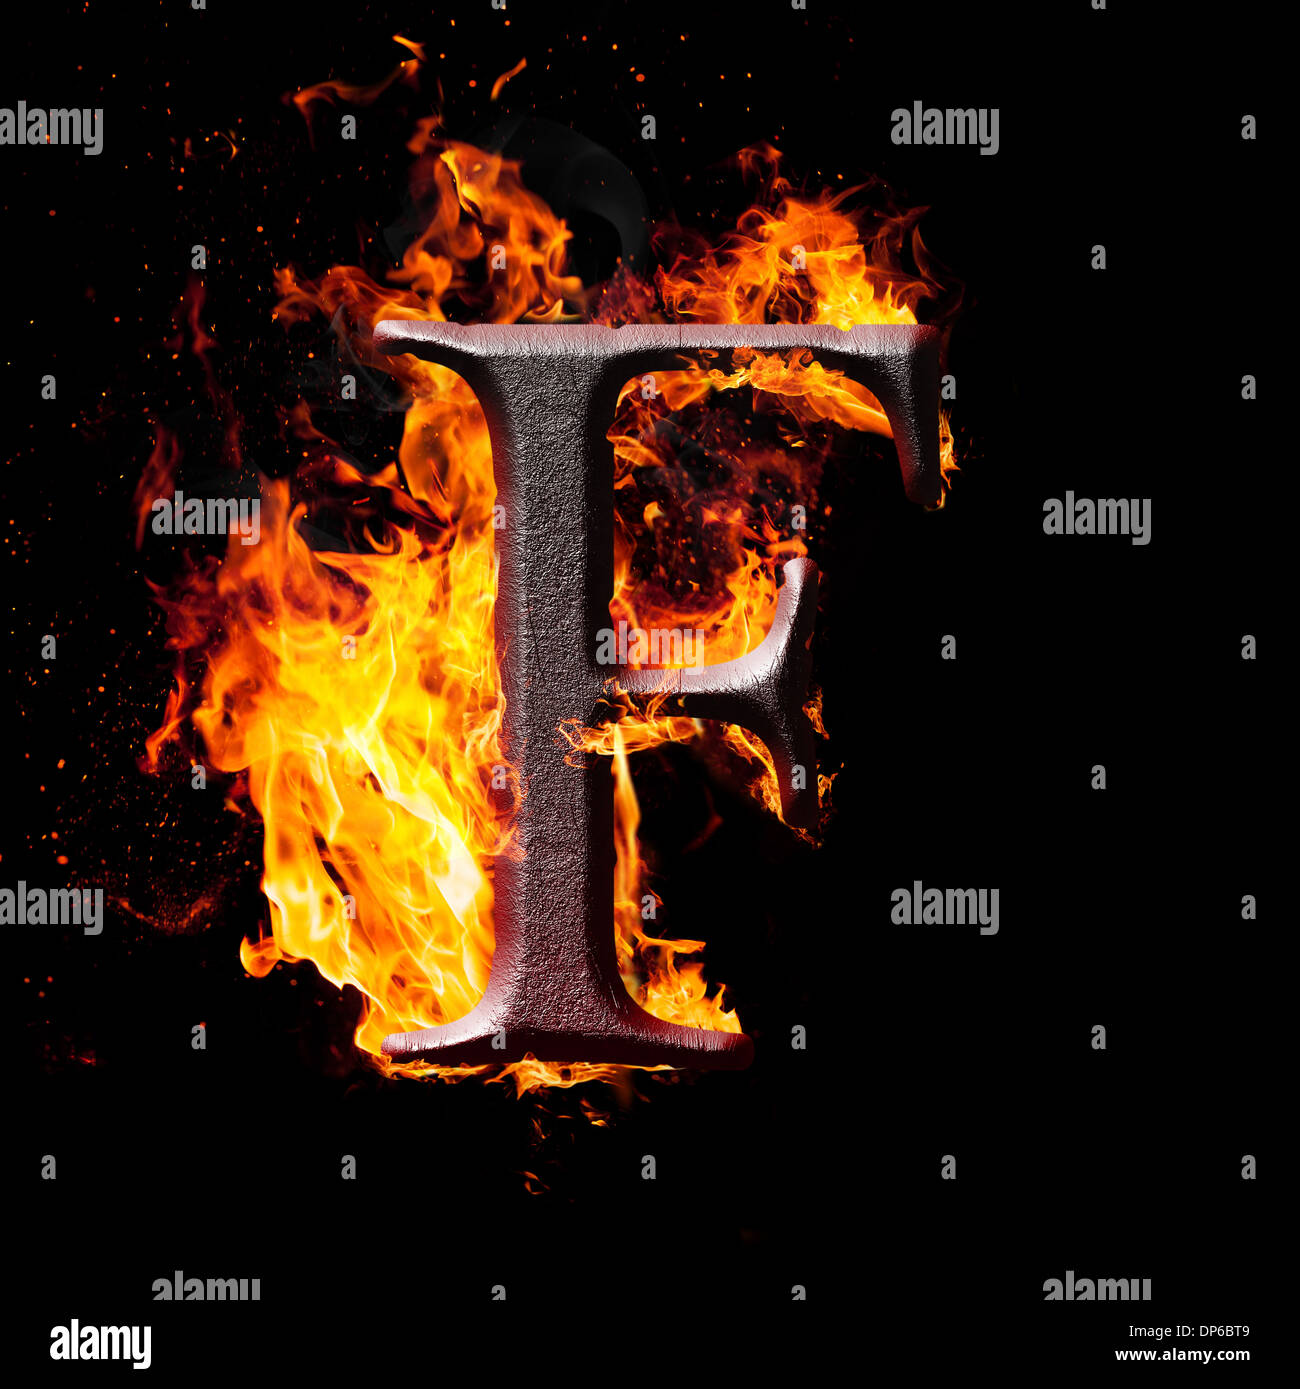 Letters and symbols in fire f stock photo royalty free image letters and symbols in fire f thecheapjerseys Image collections